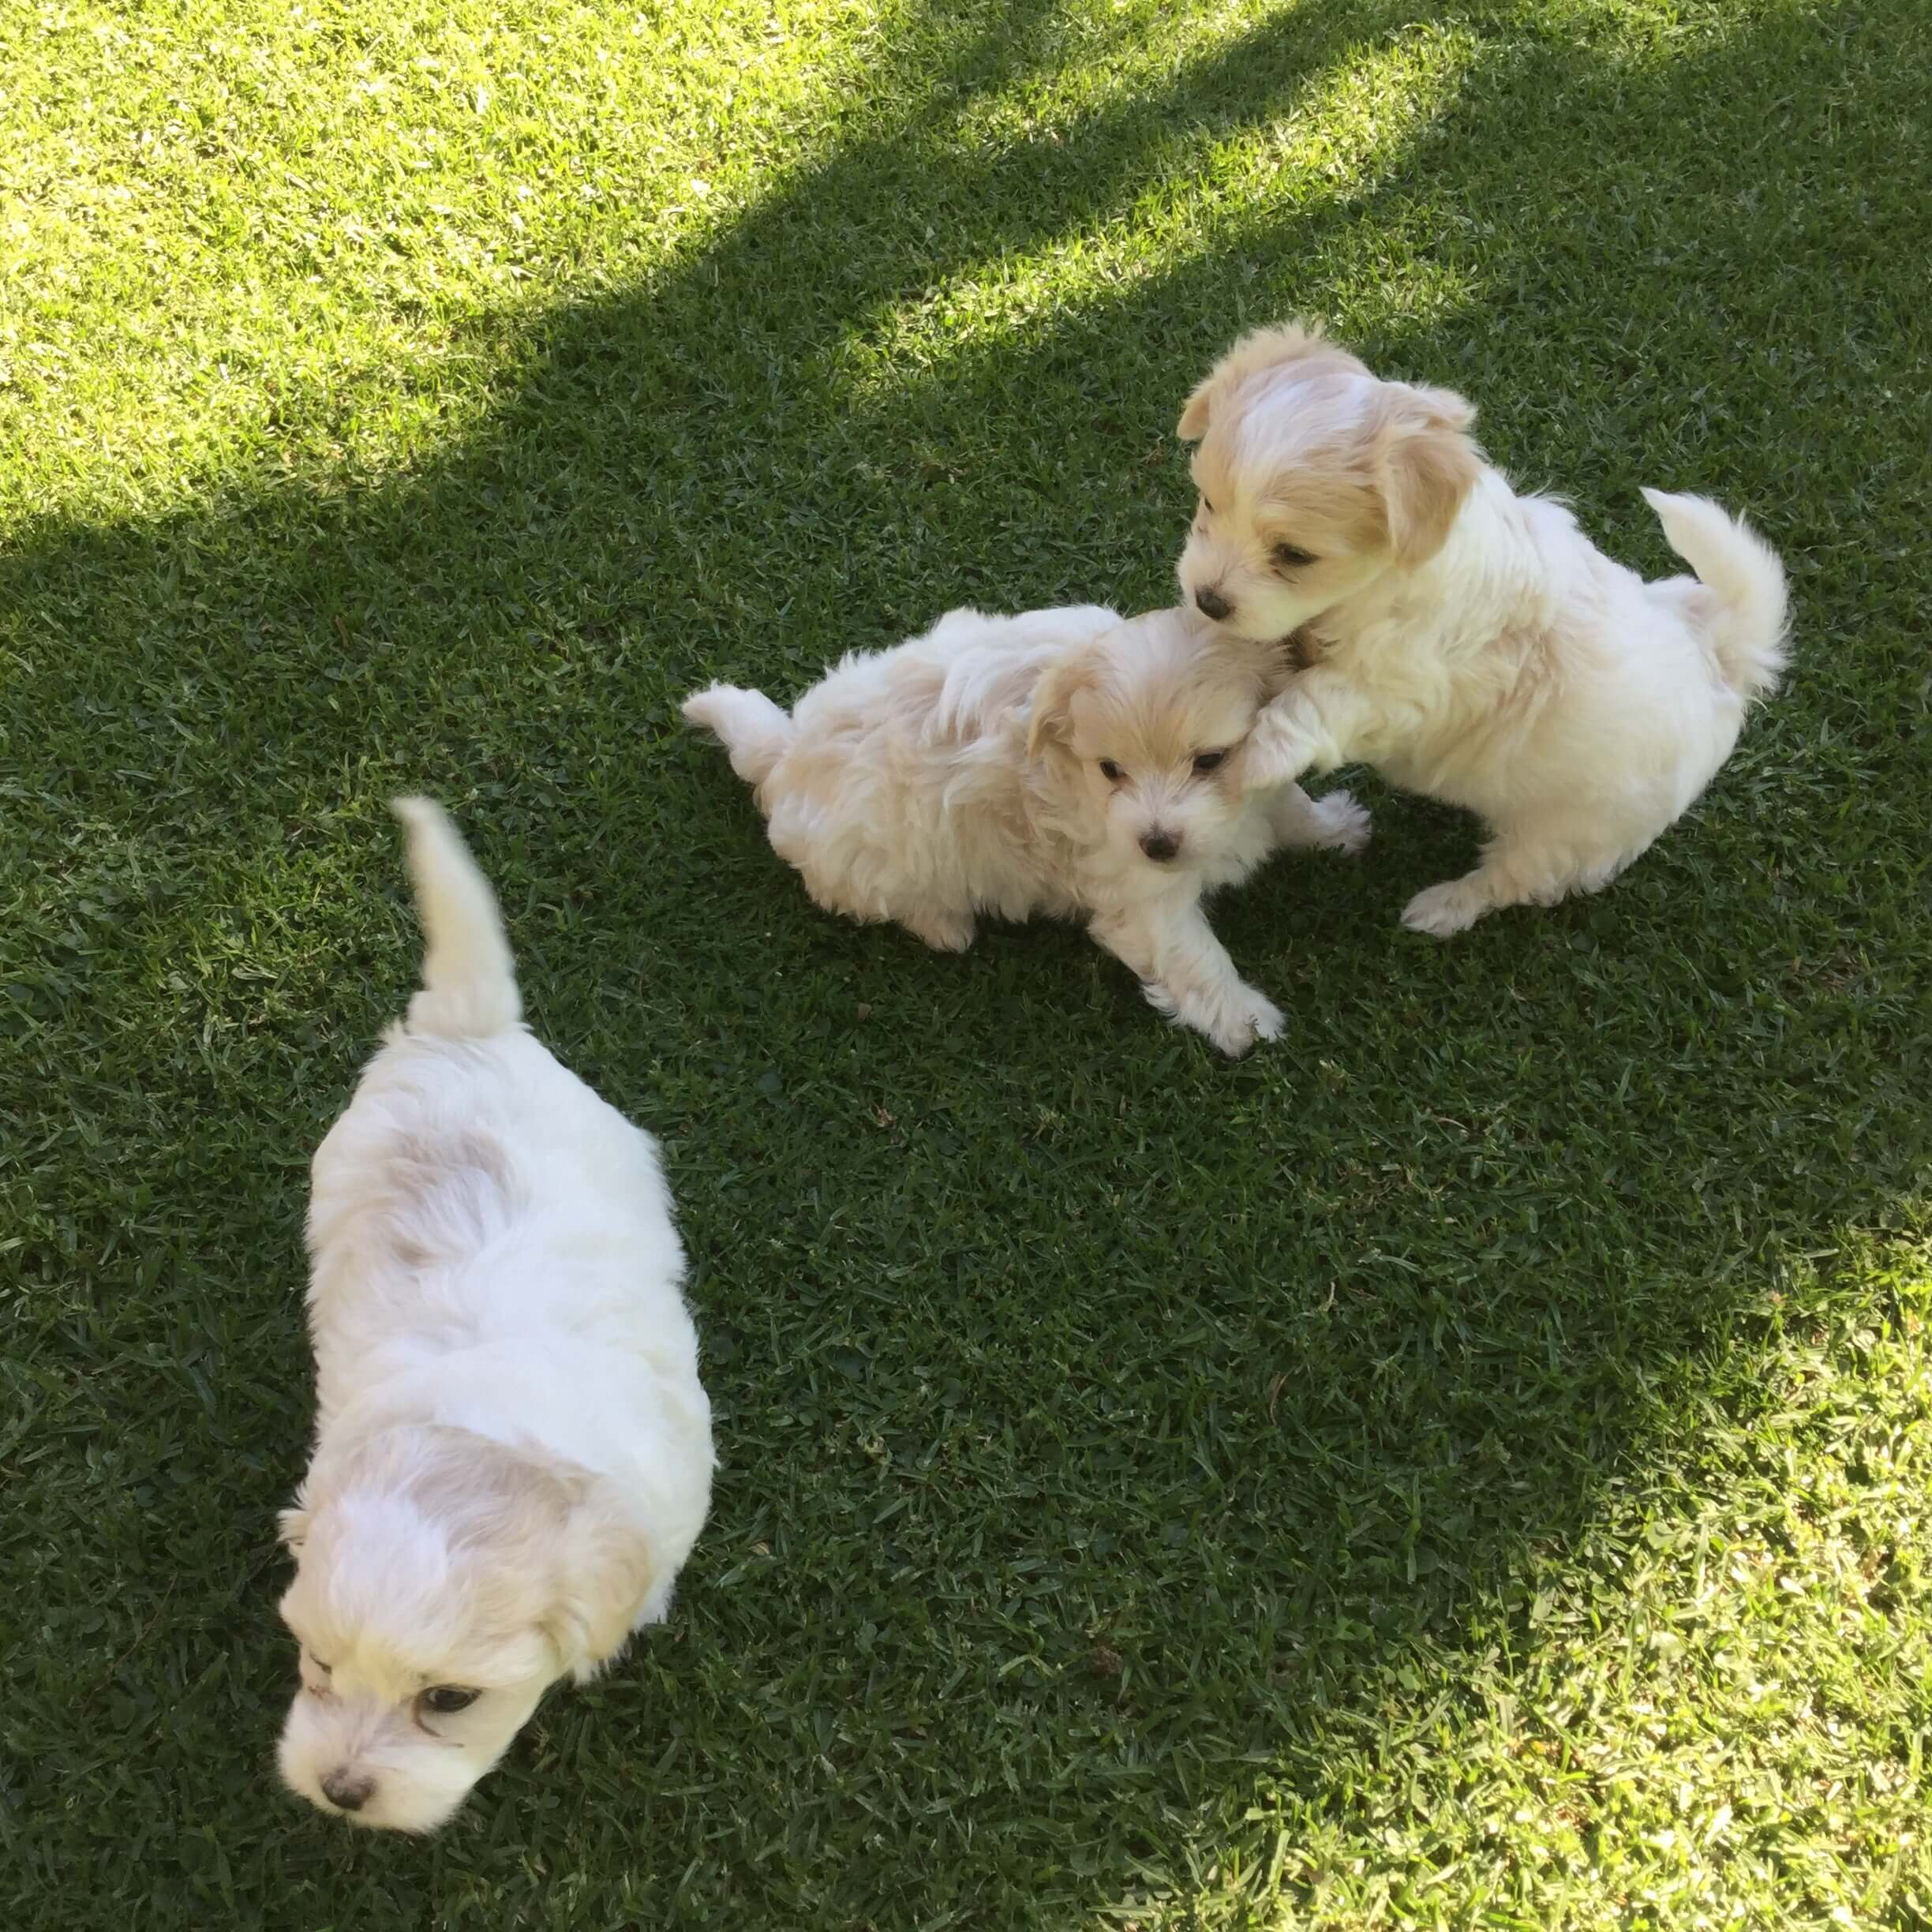 Poodle Puppies for Sale in Johannesburg by Bianca Joubert